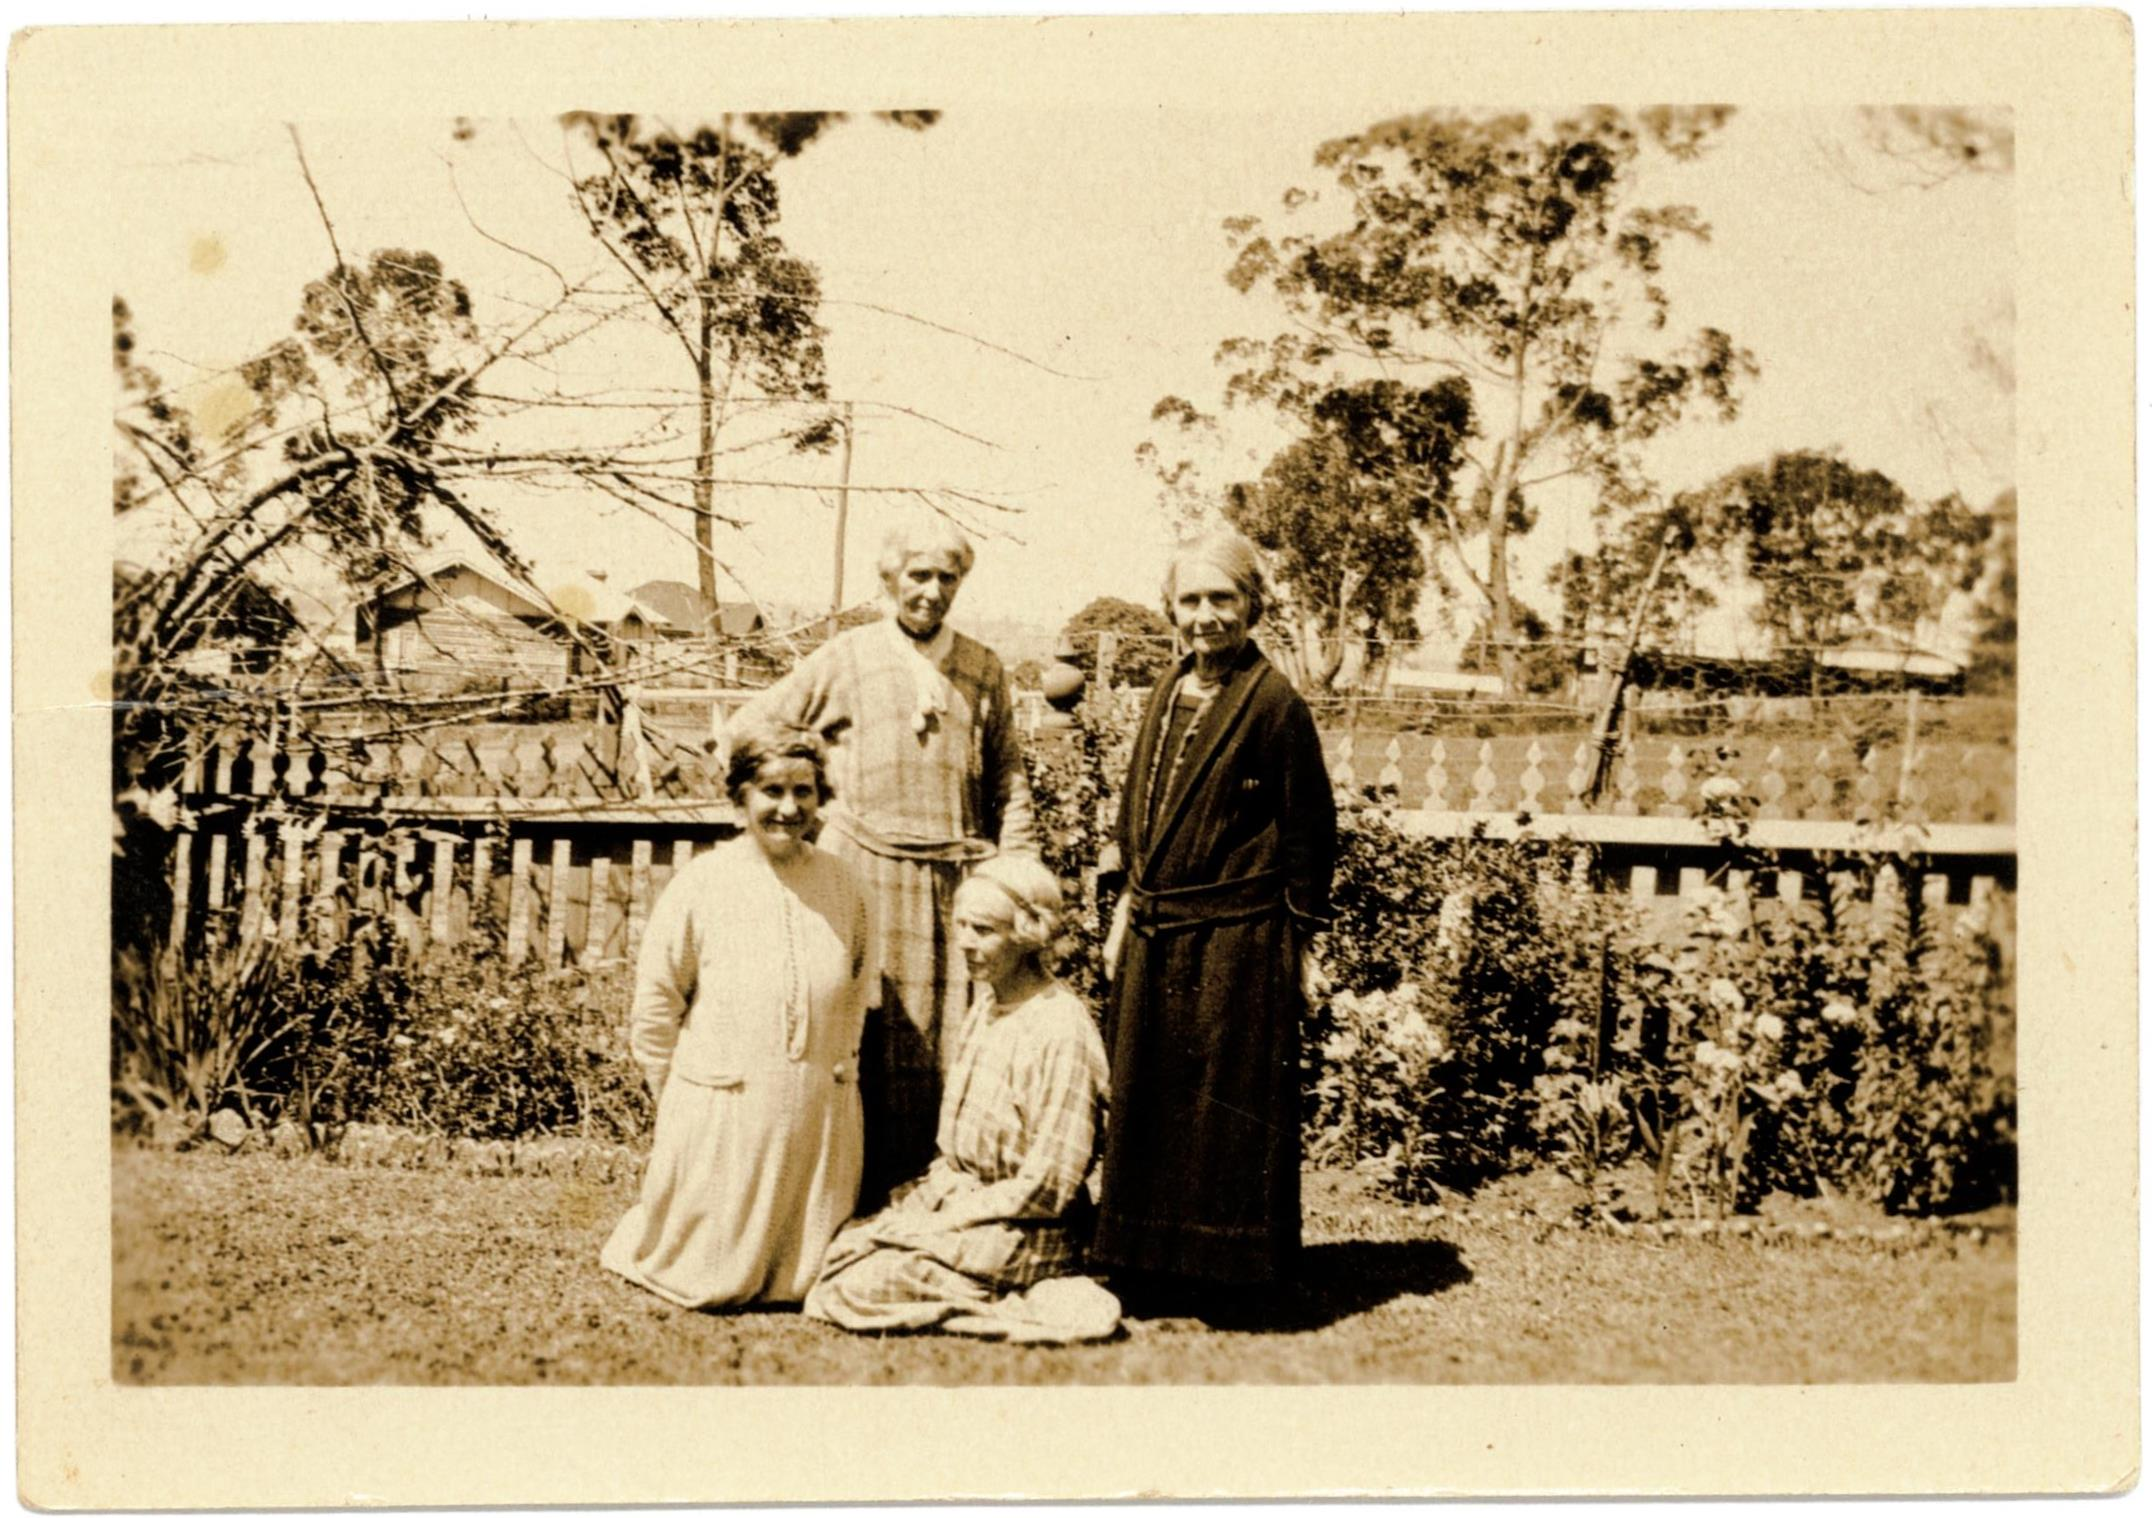 The Thorburn sisters in the garden at Meroogal, around 1922 / photographer unknown.